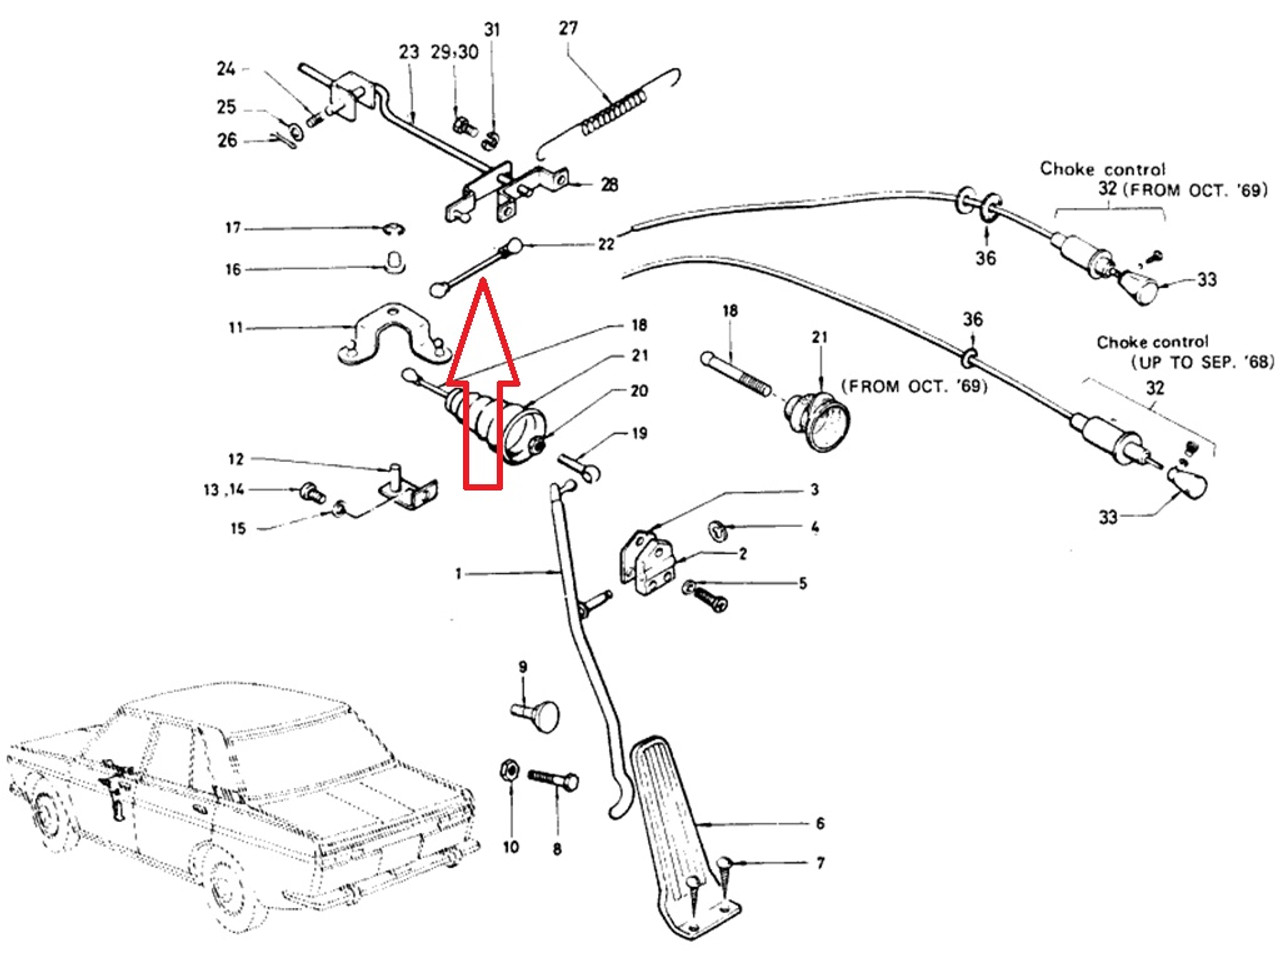 X Throttle Linkage Connecting Rod At Firewall Datsun 510